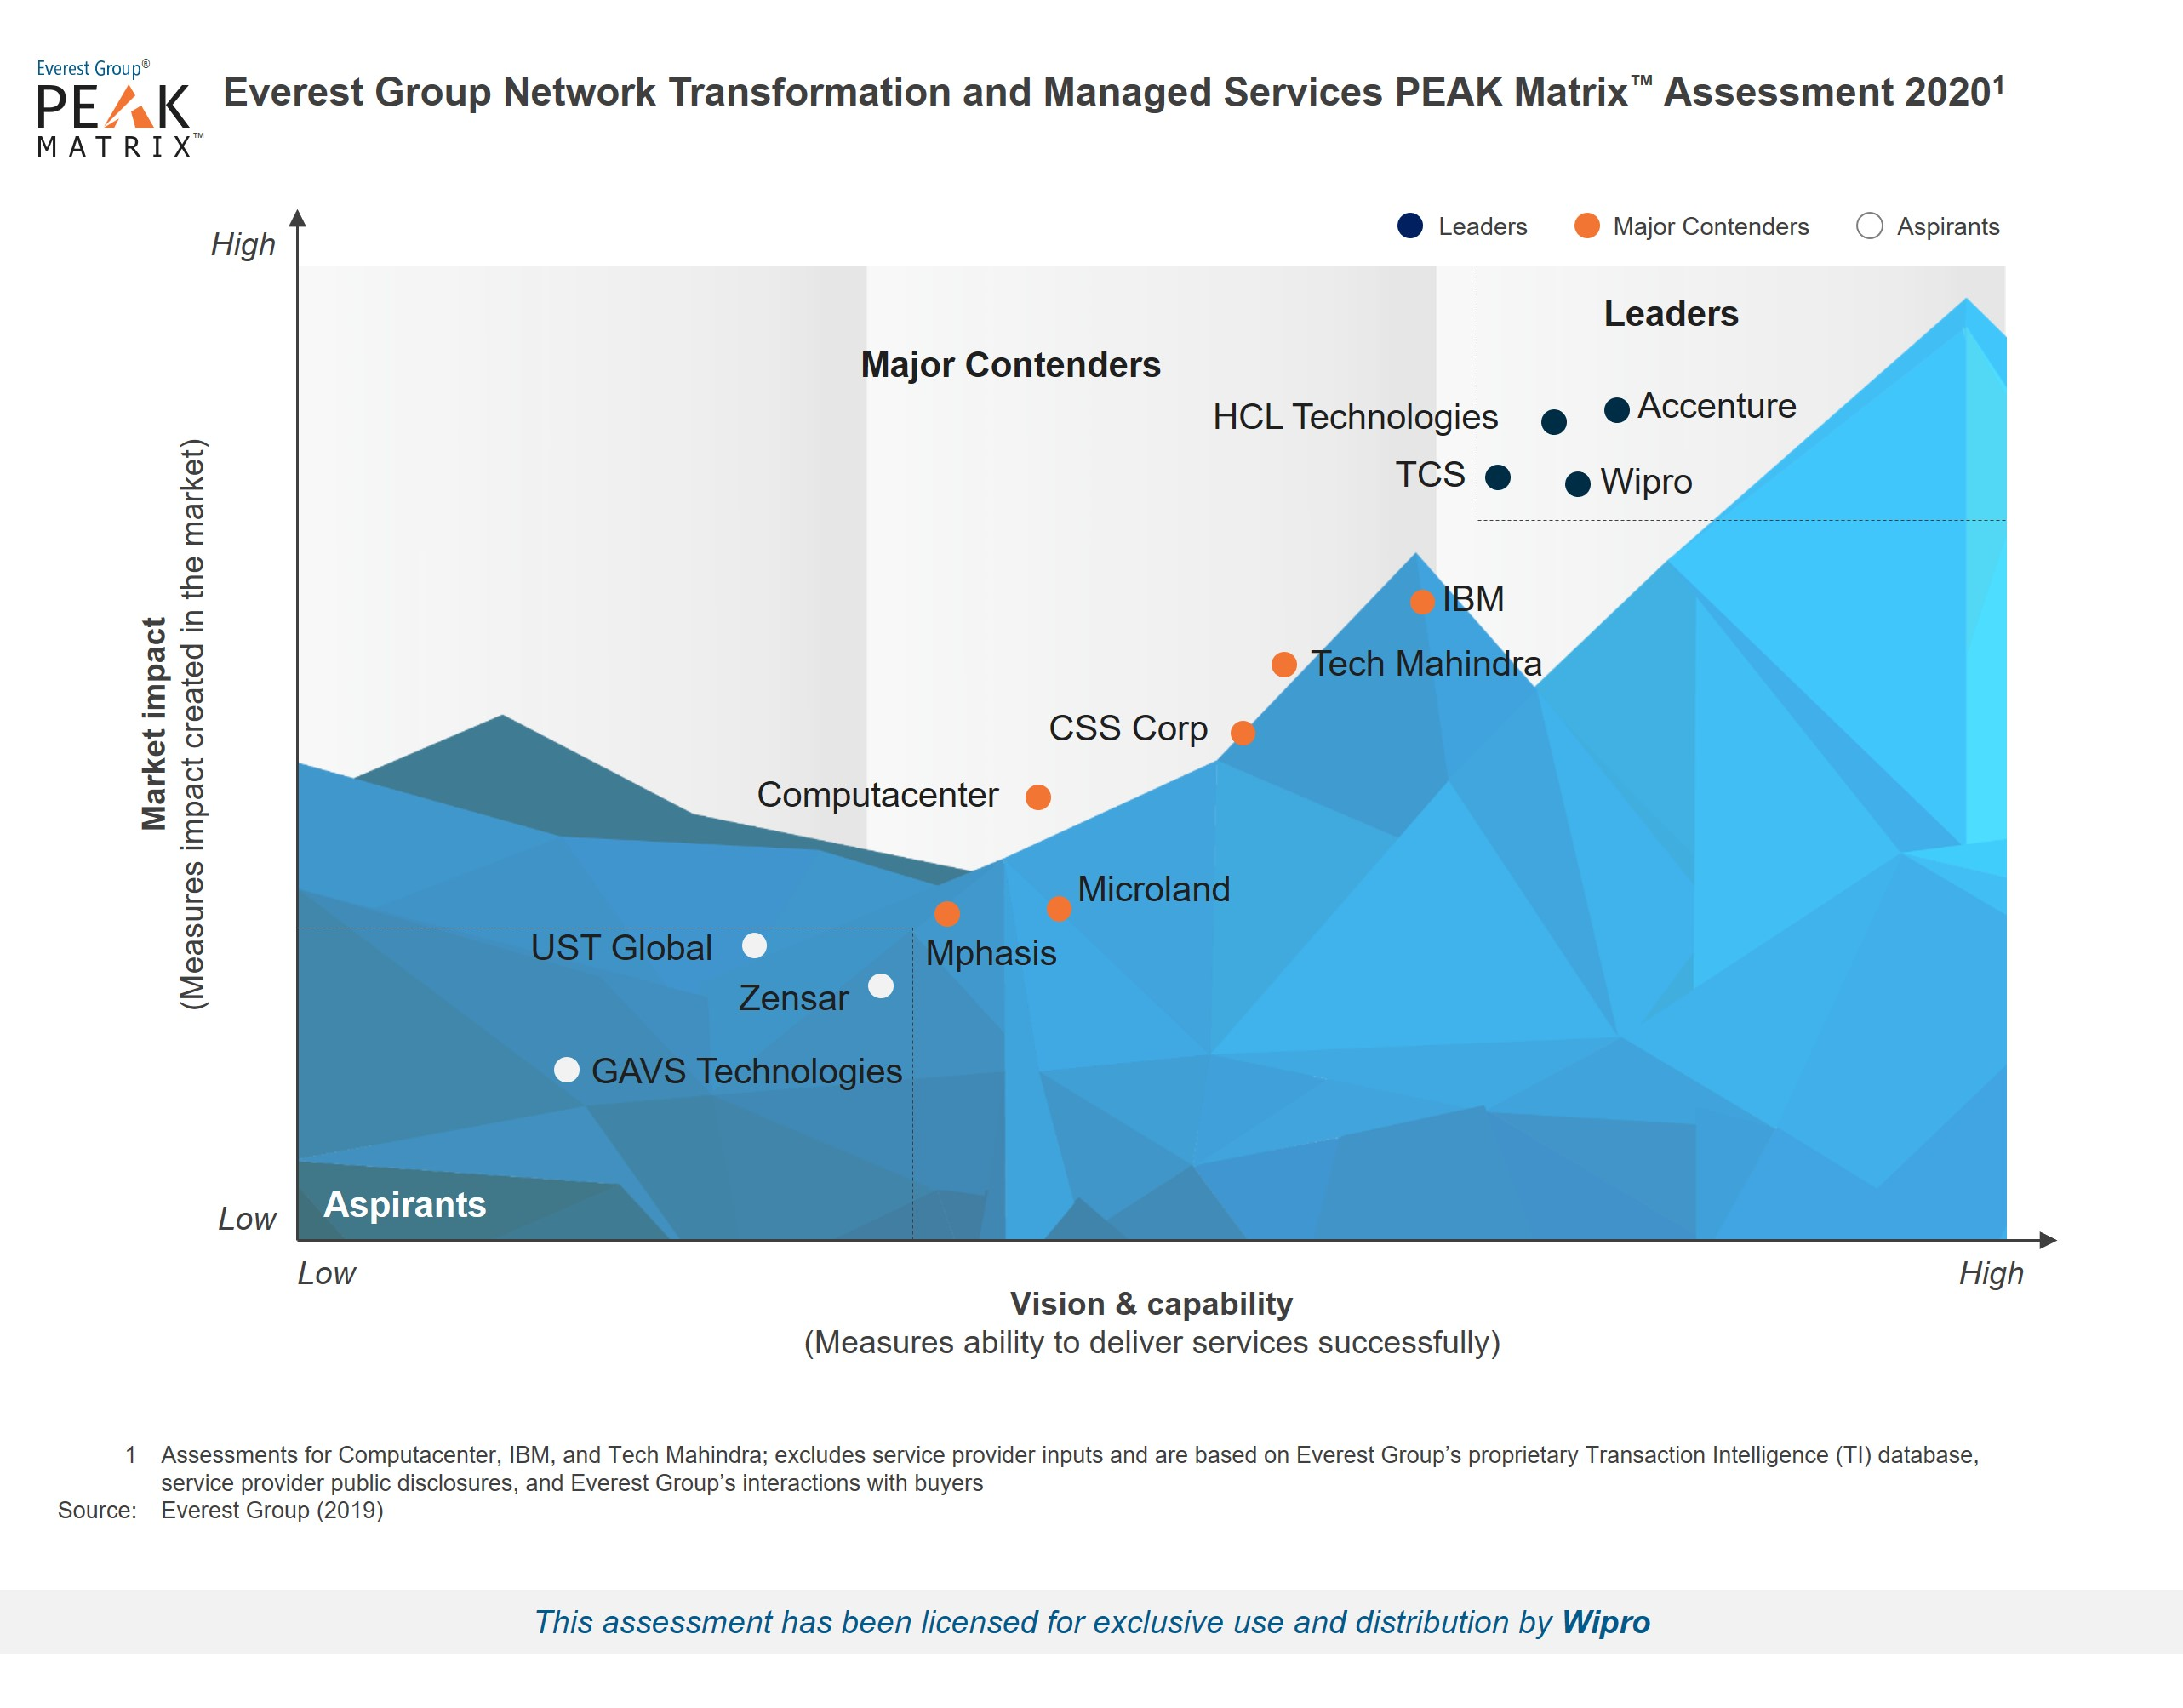 Wipro positioned as a Leader in Network Transformation and Managed Service Providers 2020